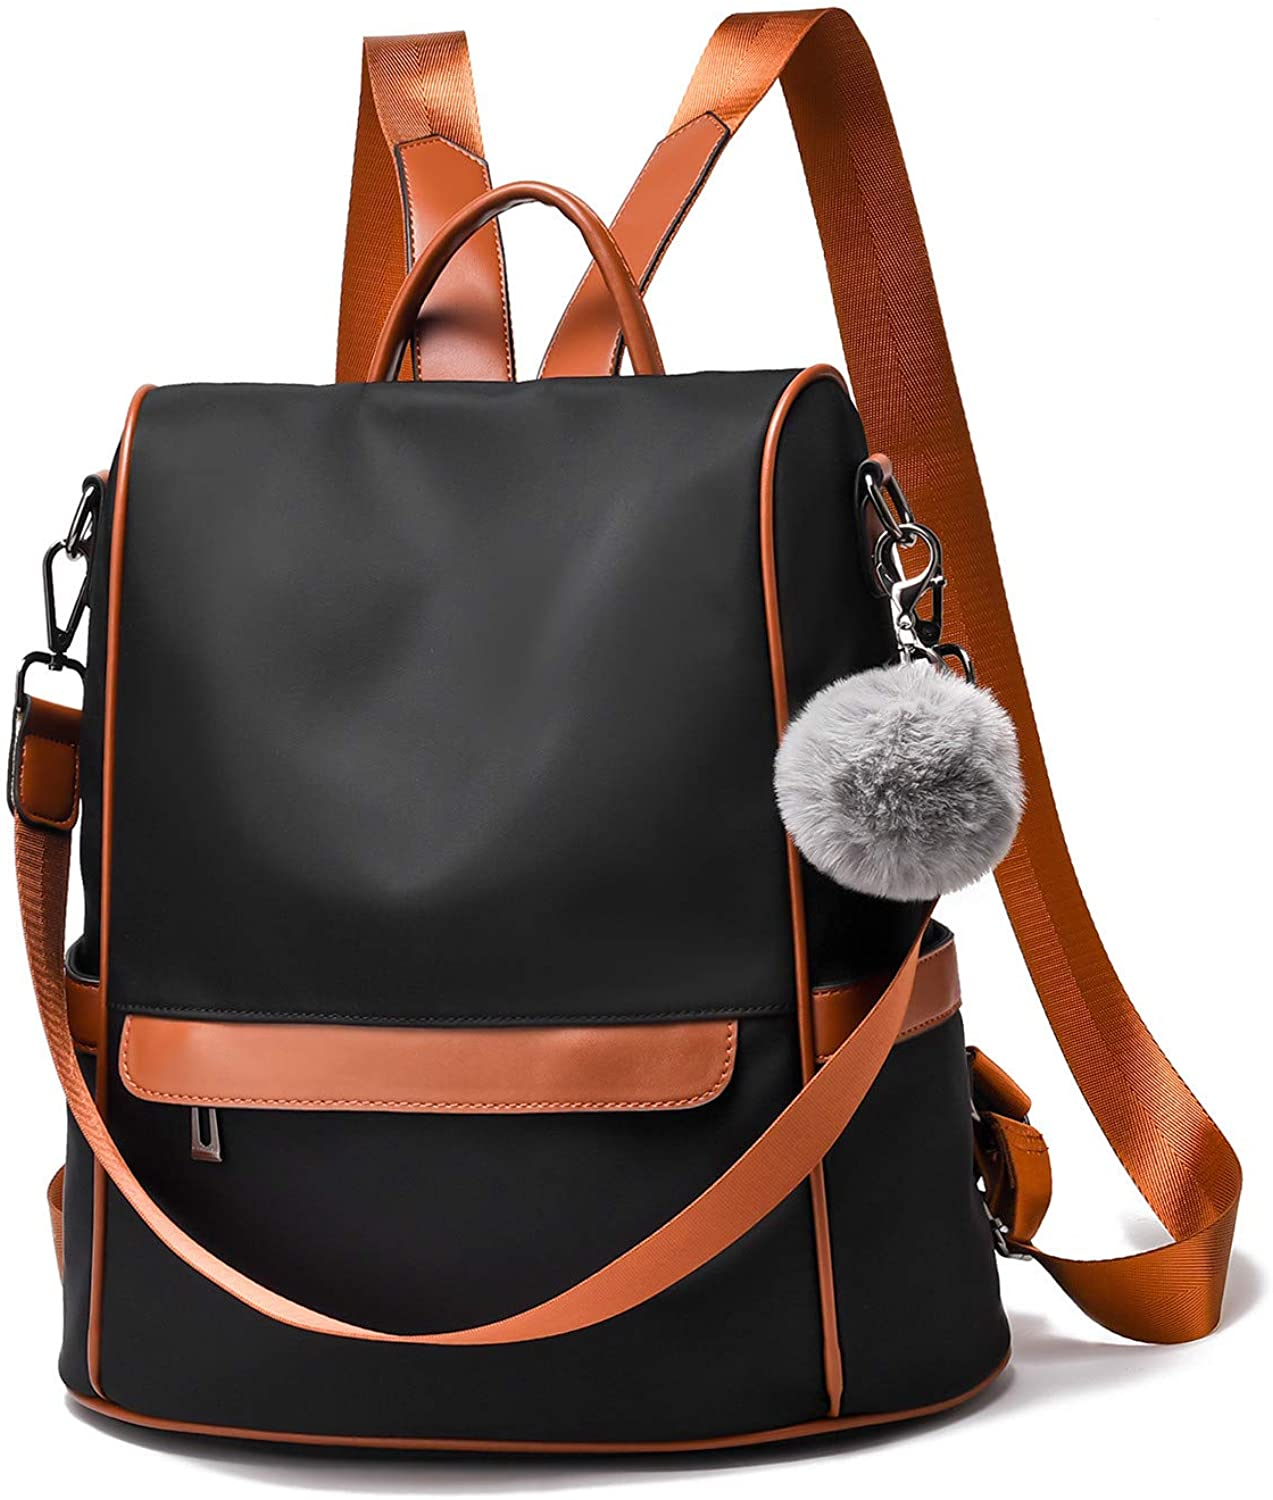 Women's Leather Backpack Anti-Theft Rucksack Shoulder School Travel Satchel Bag